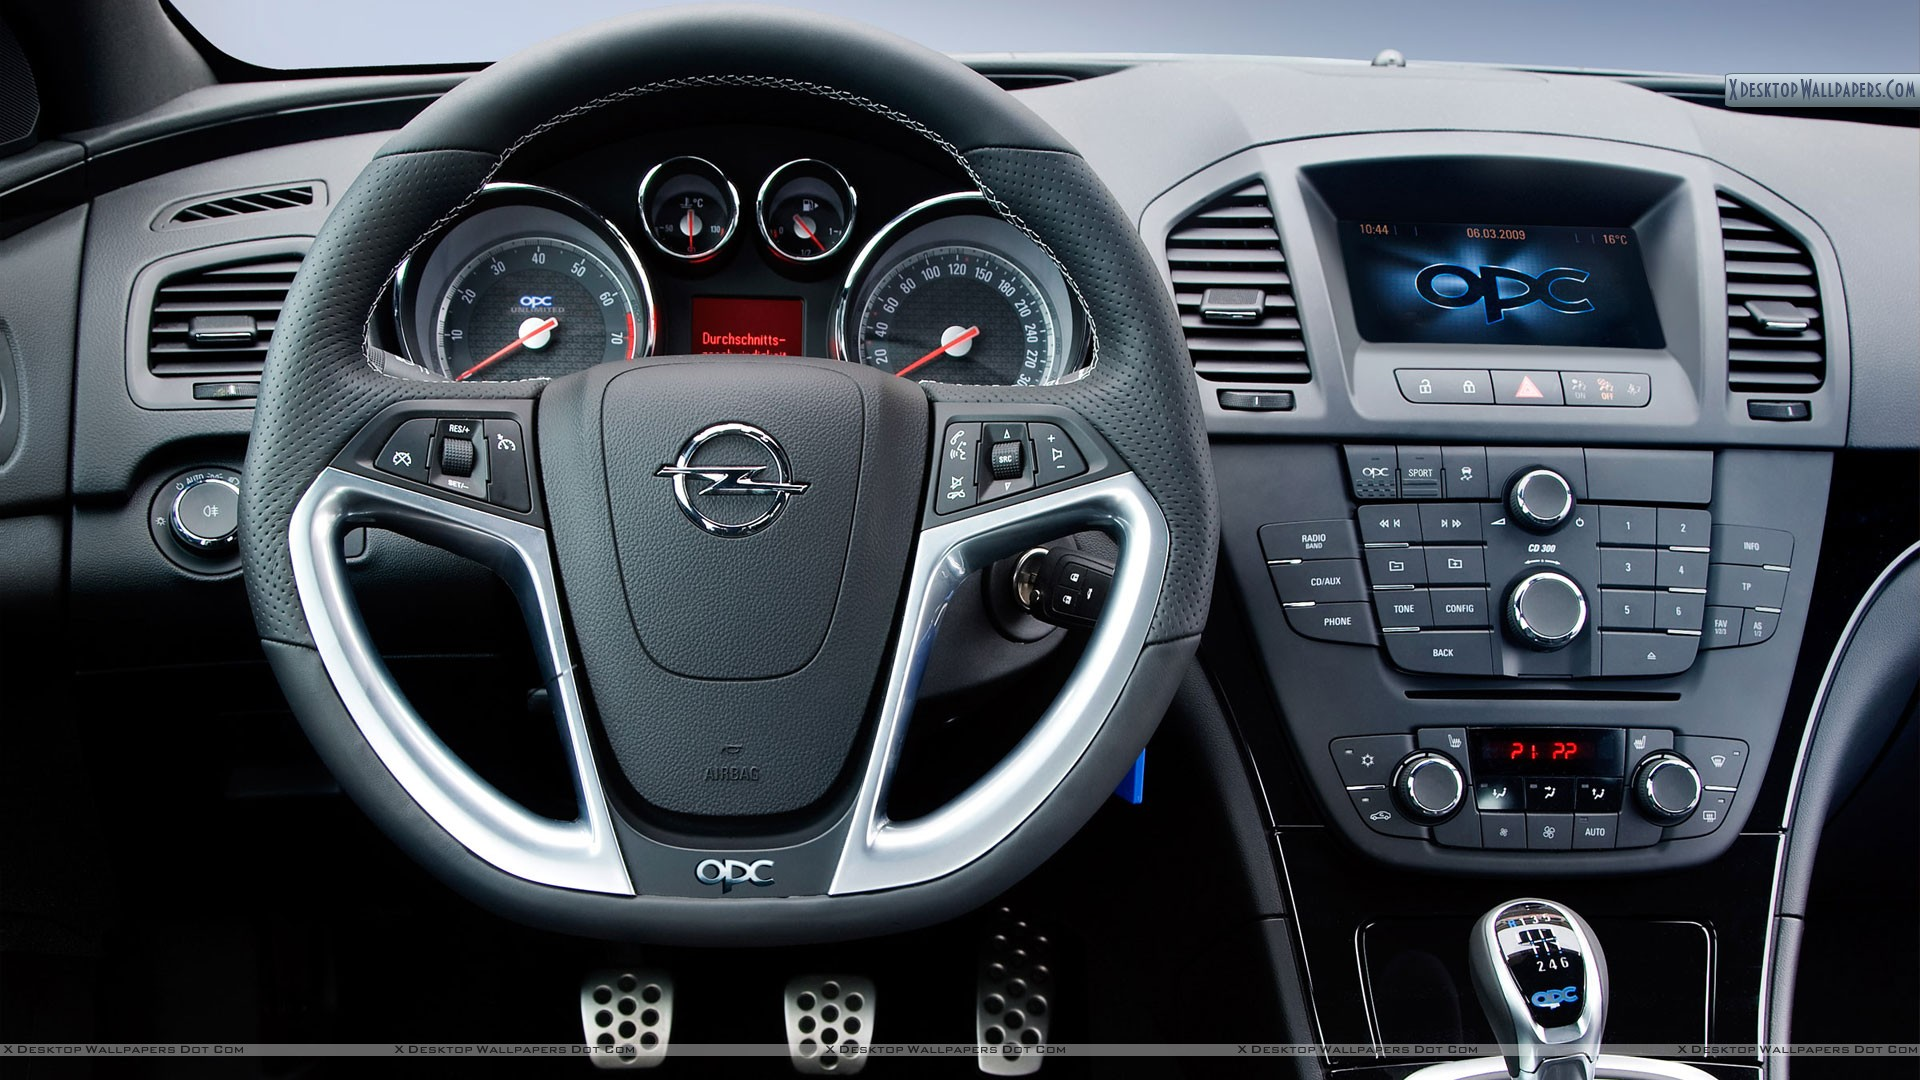 Opel Insignia Opc Unlimited Interior Picture Wallpaper